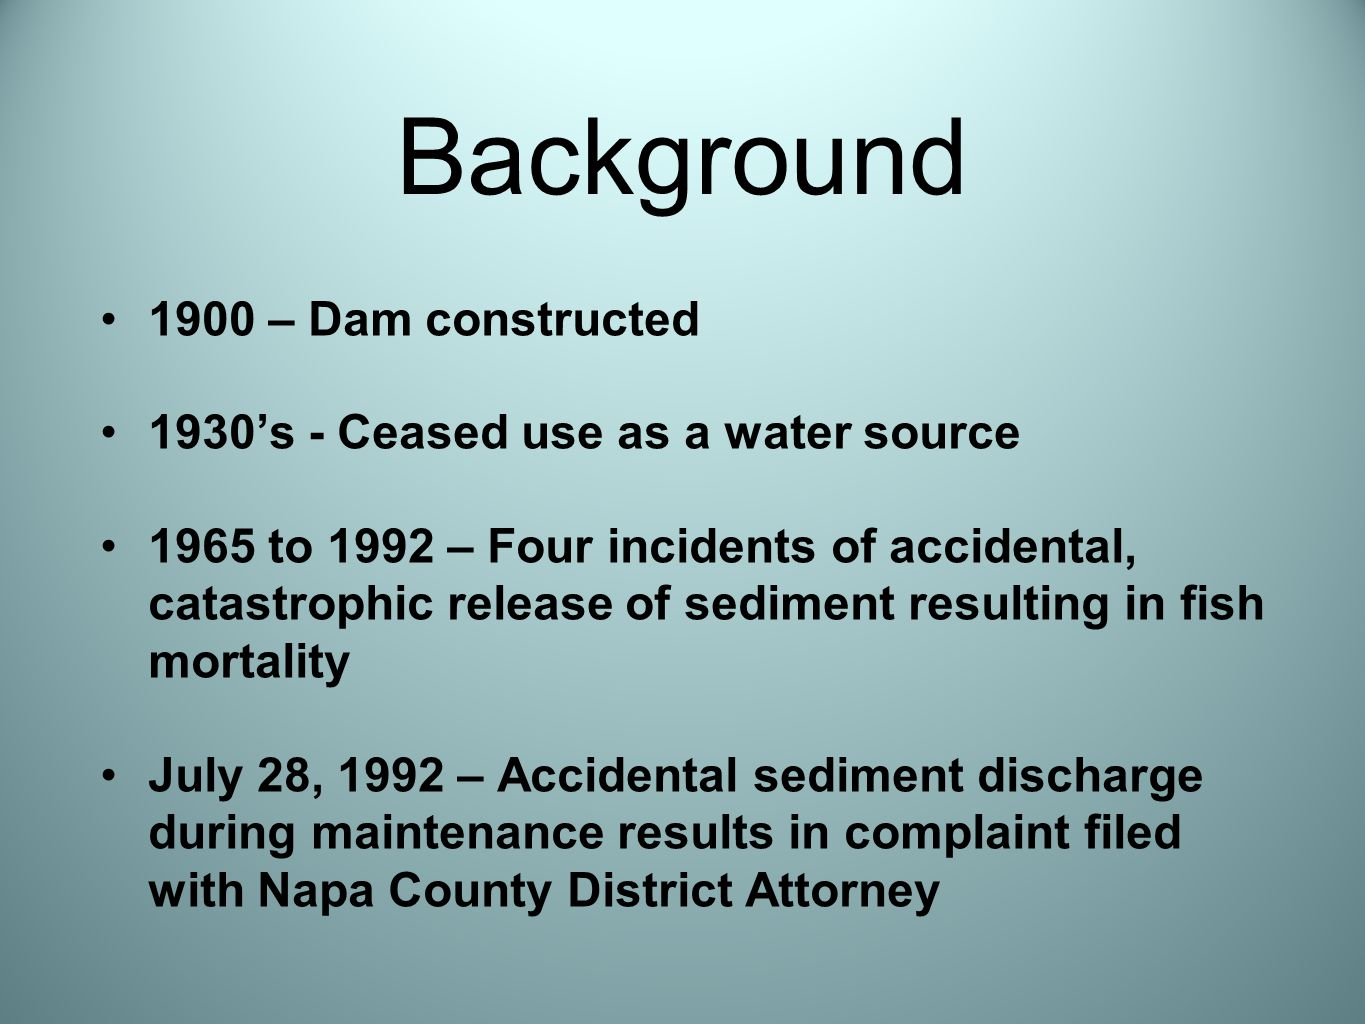 1900 – Dam constructed 1930's - Ceased use as a water source 1965 to 1992 – Four incidents of accidental, catastrophic release of sediment resulting in fish mortality July 28, 1992 – Accidental sediment discharge during maintenance results in complaint filed with Napa County District Attorney